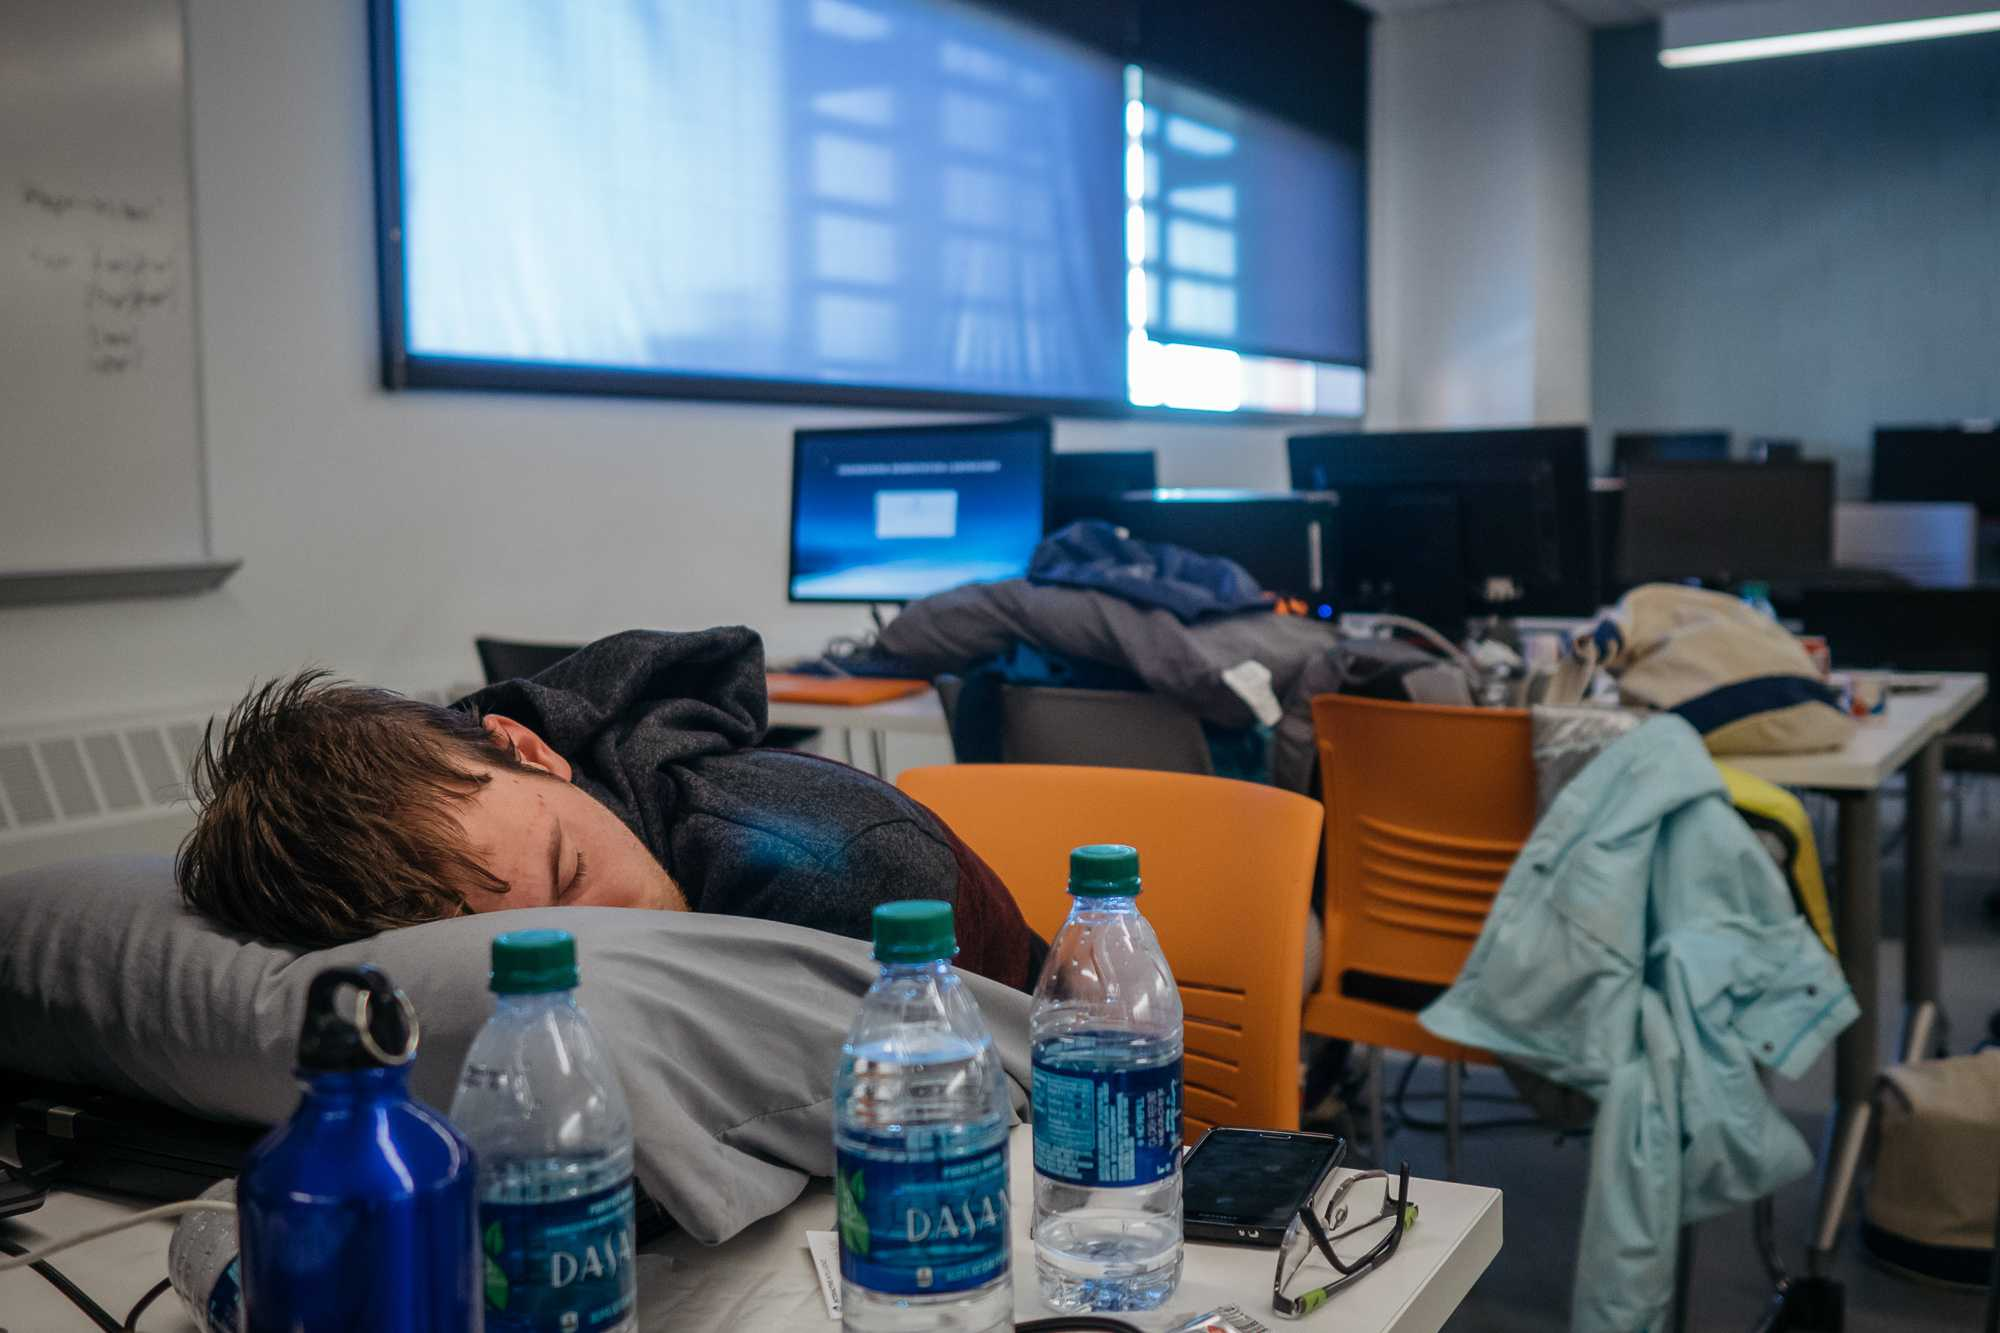 A student sleeps in the undergraduate students lounge of the Electrical and Computer Engineering building after two days of hacking on Sunday, Feb 21 2016.